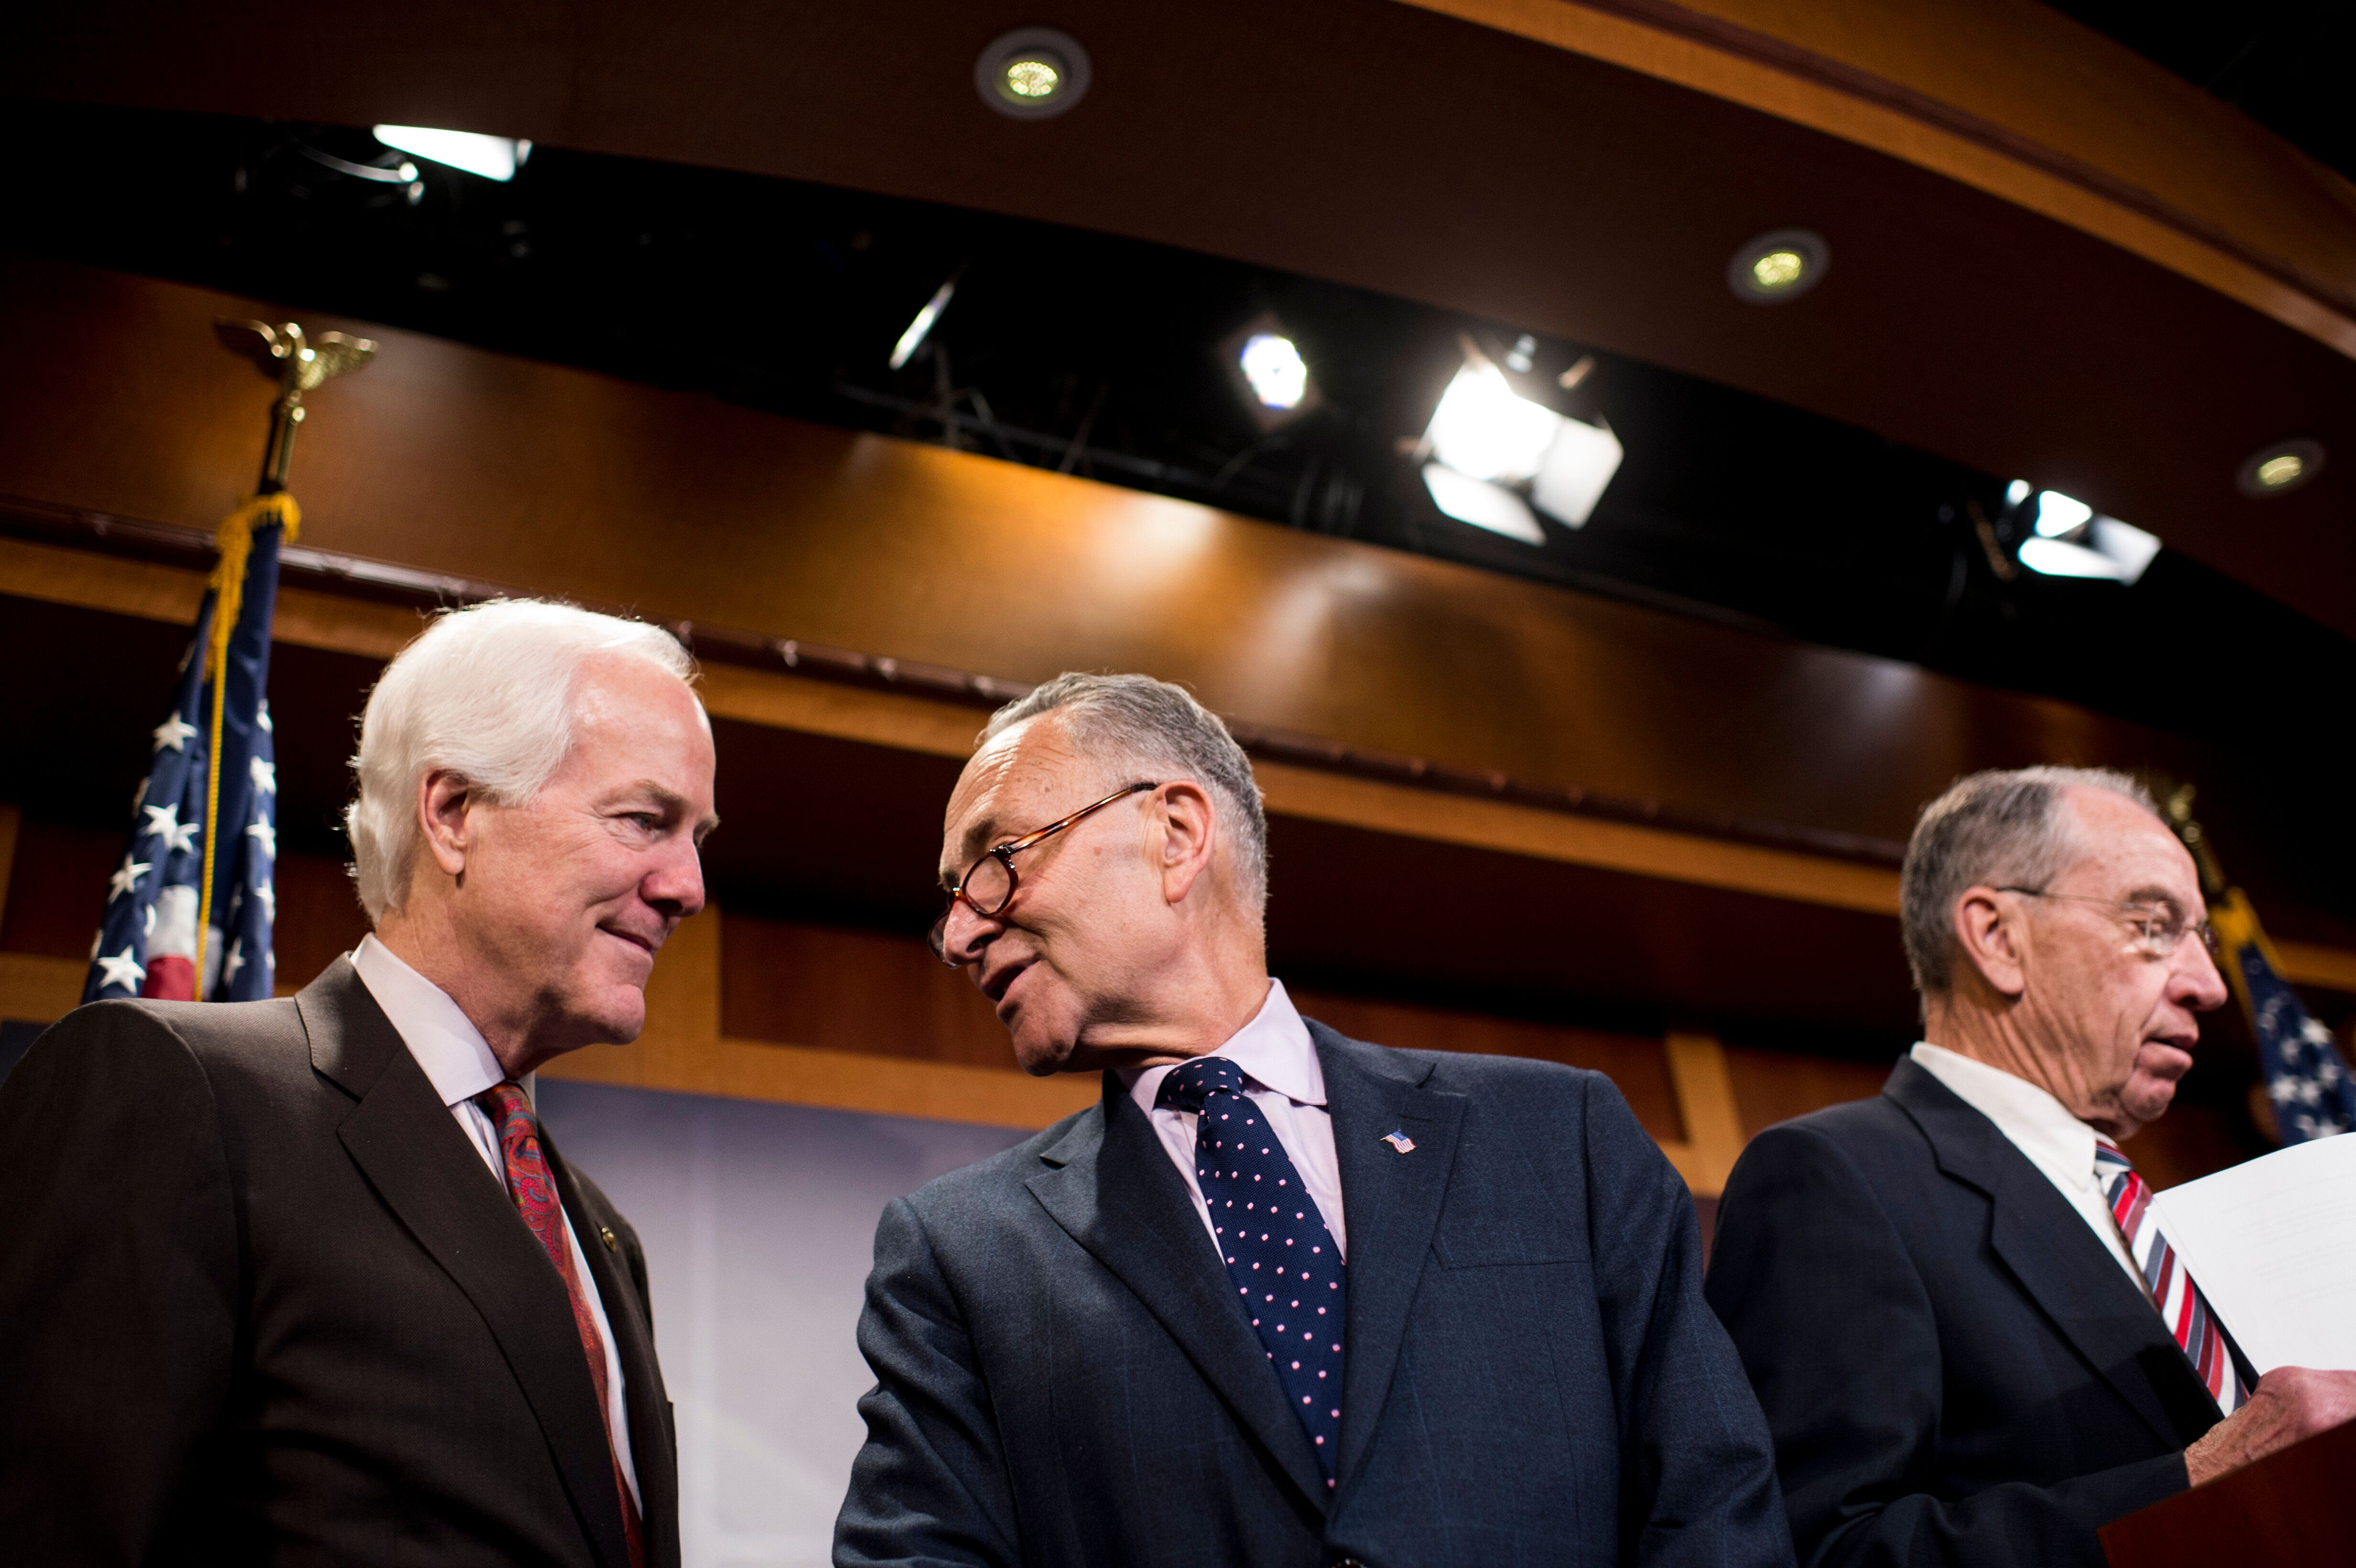 UNITED STATES - APRIL 29: Senators John Cornyn, R-Texas, left, and Chuck Schumer, D-N.Y., talk as chairman Chuck Grassley, R-Iowa speaks during the Senate Judiciary Committee members' news conference in the Capitol on bipartisan patent reform legislation on Wednesday, April 29, 2015. (Photo By Bill Clark/CQ Roll Call)